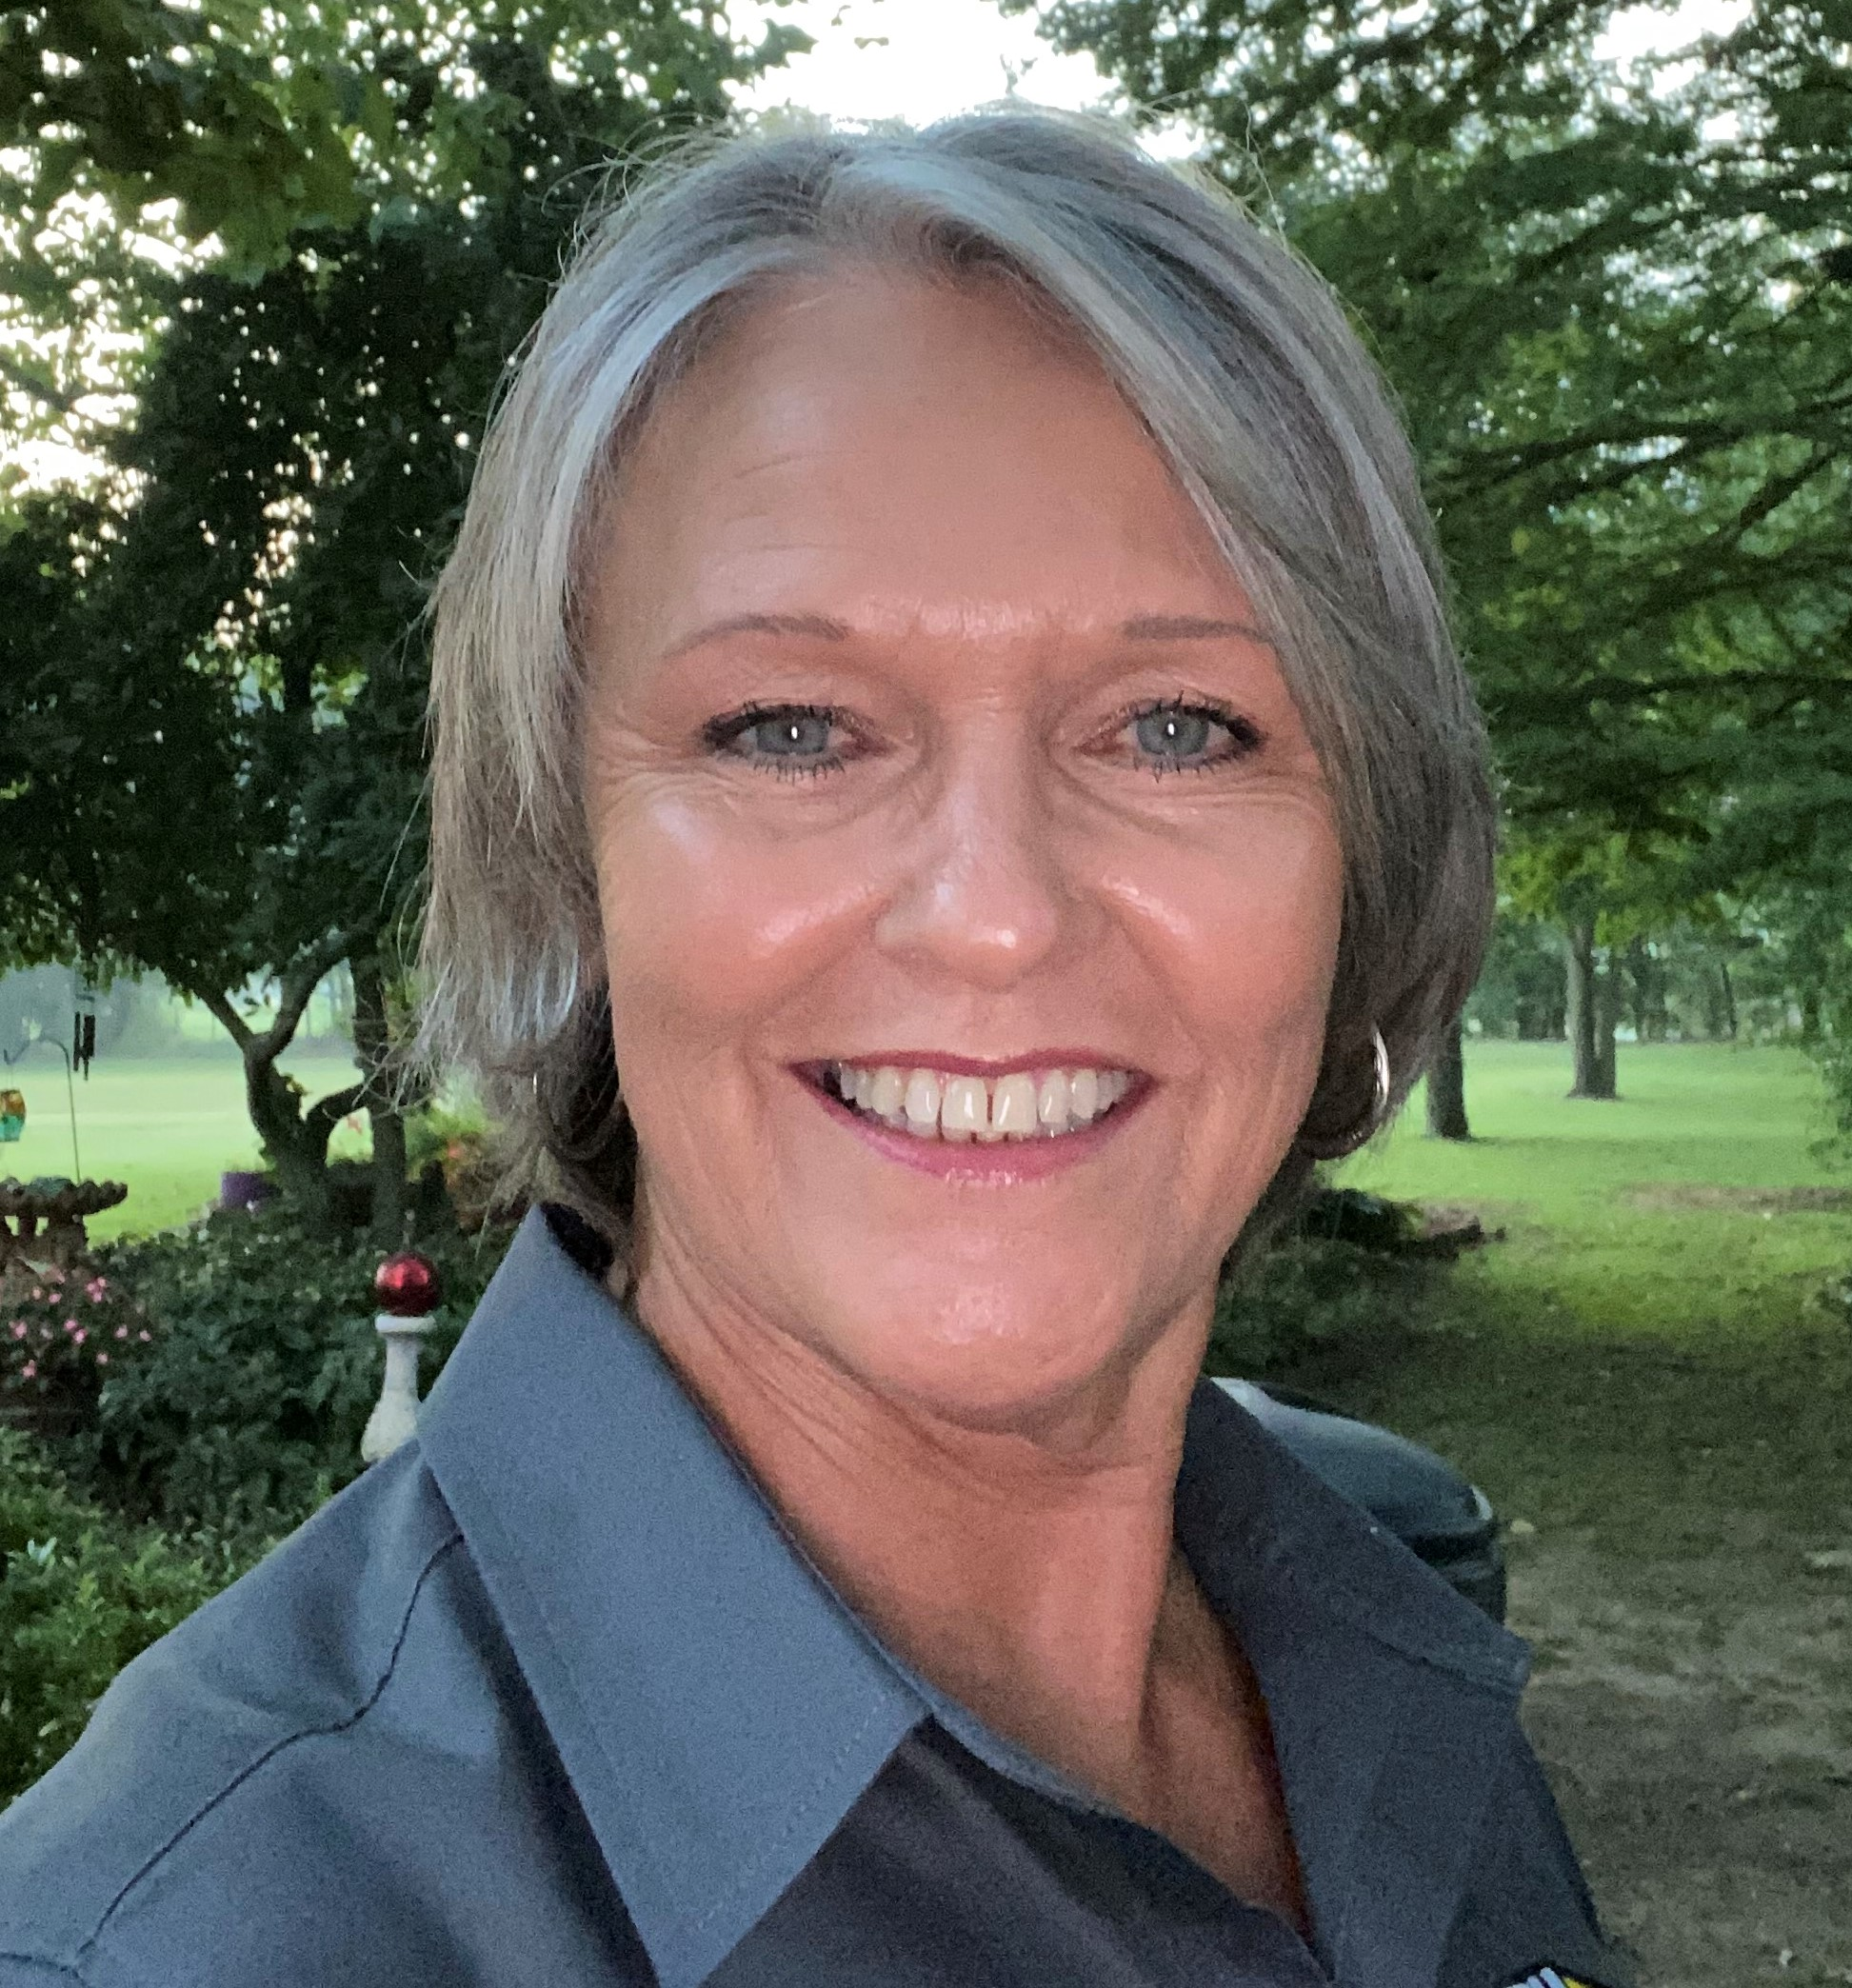 EHC Welcomes Kay Spence, Sr. Site Superintendent!